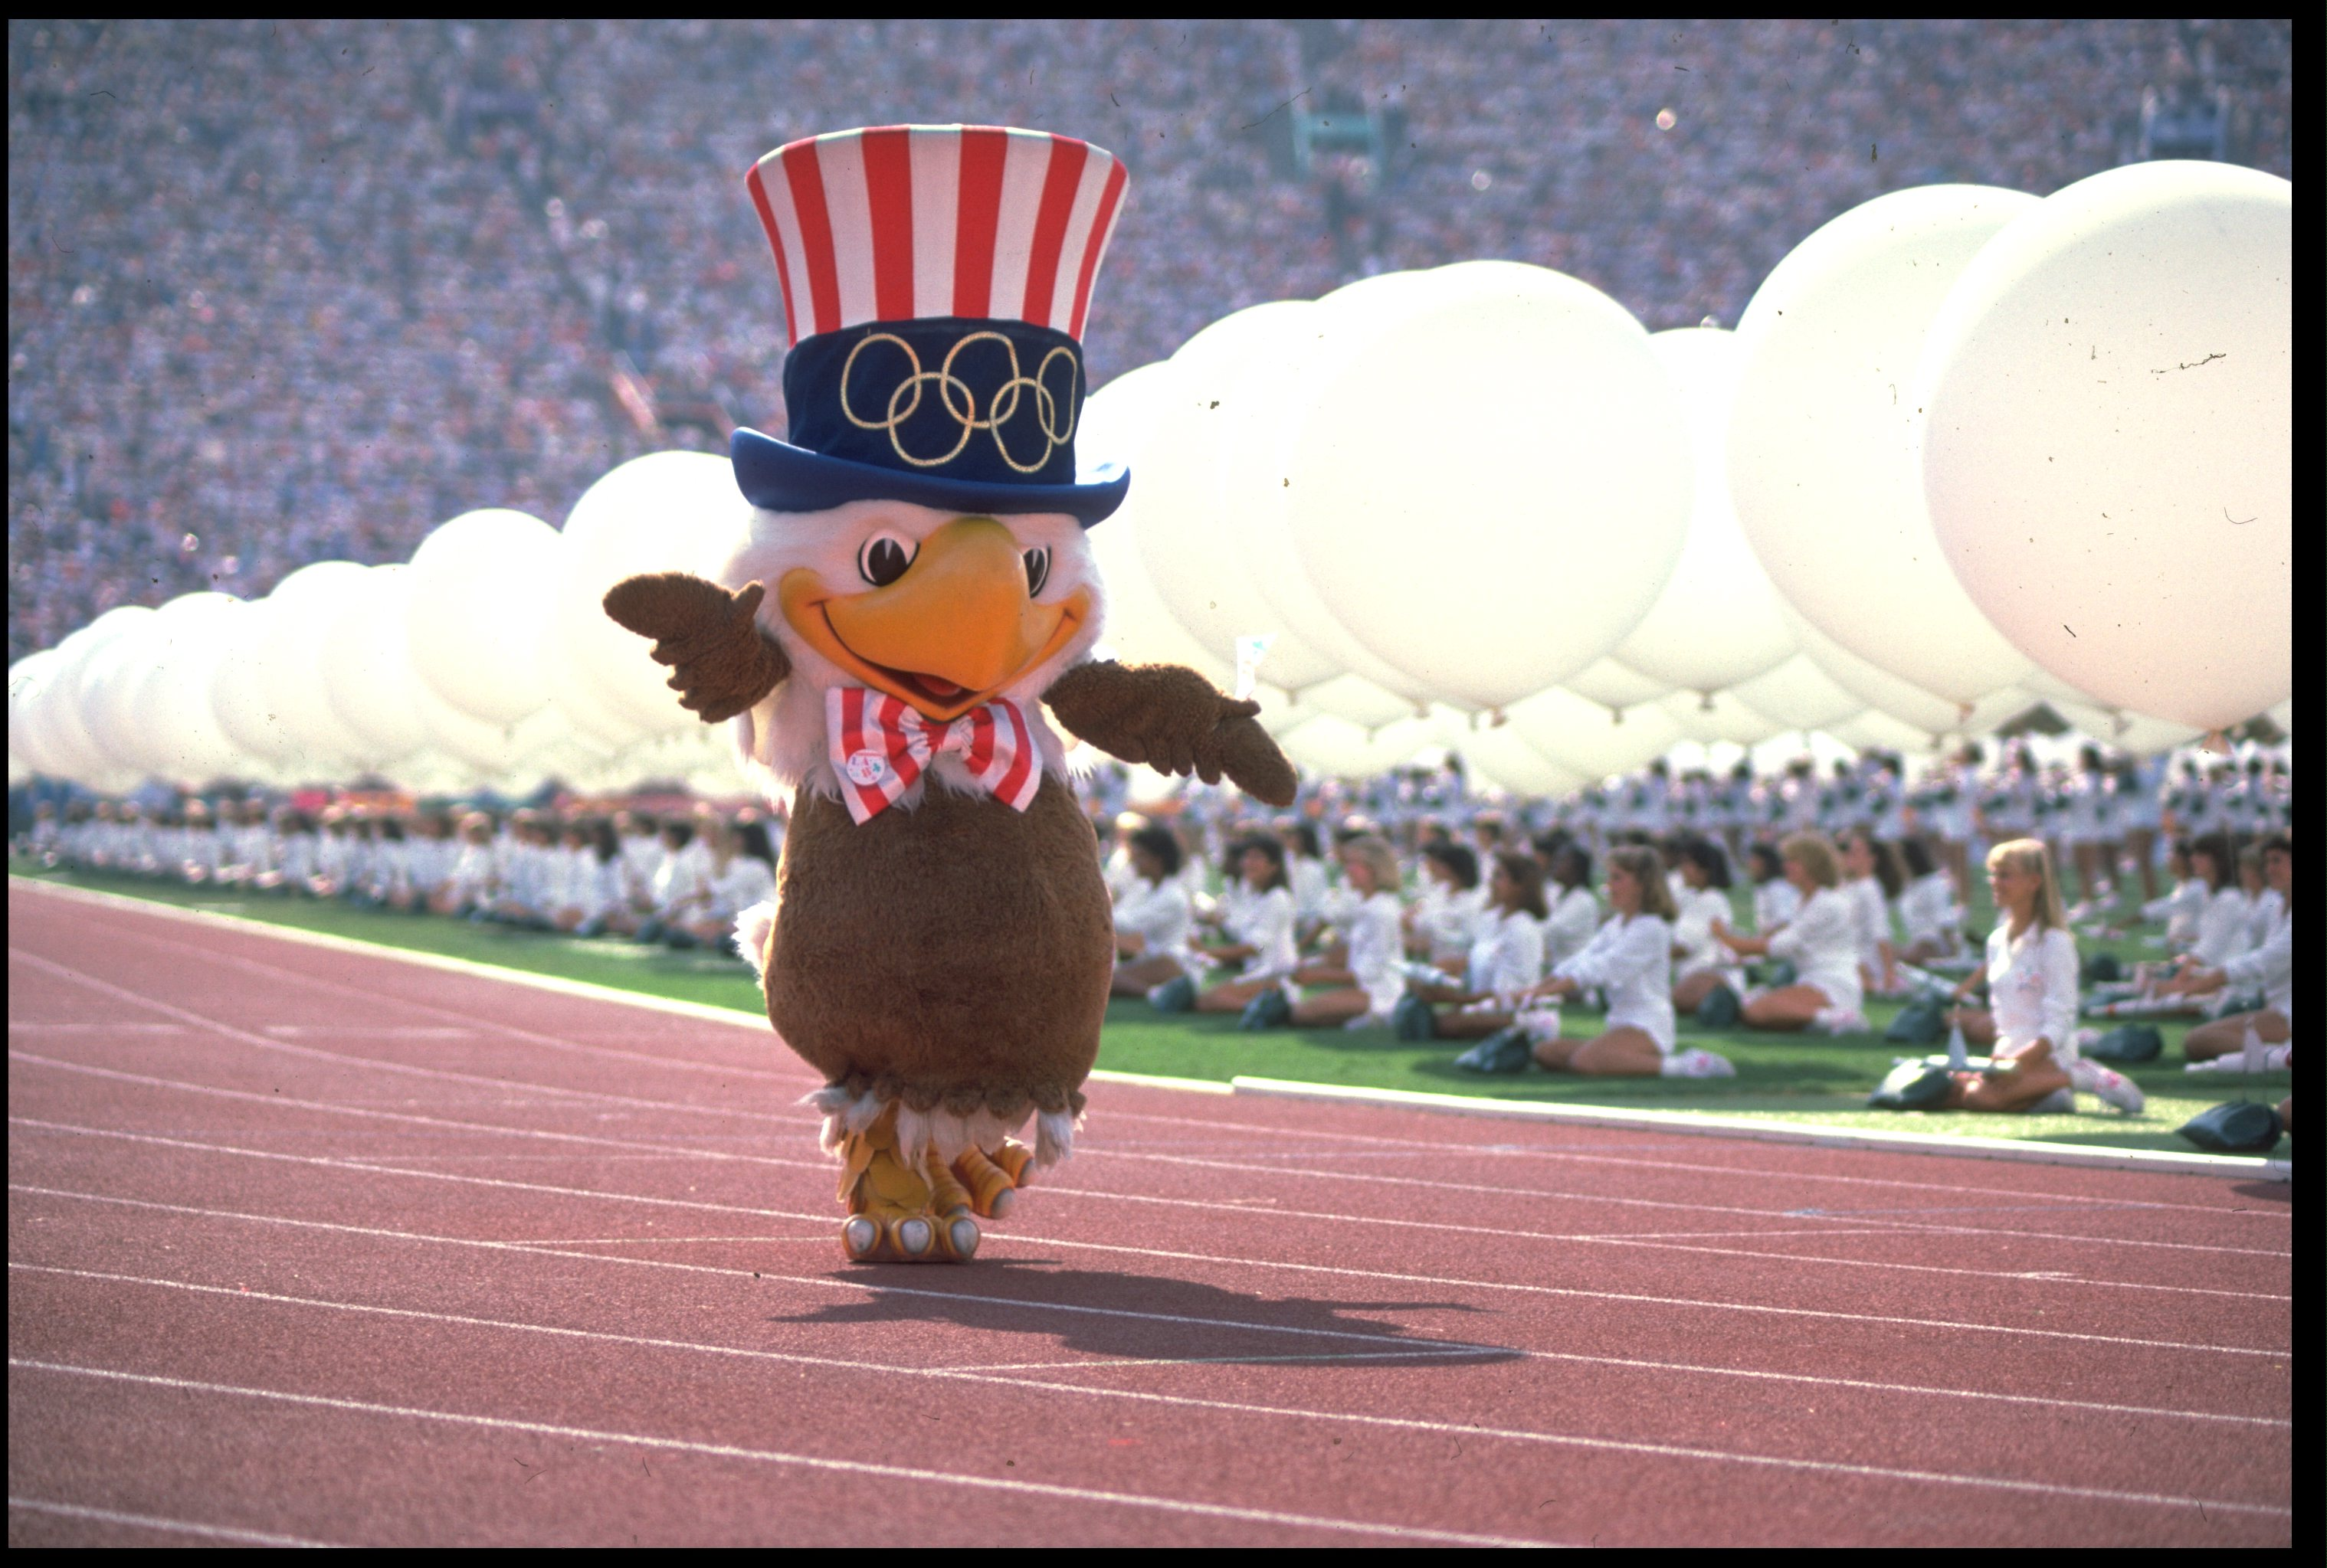 28 JUL 1984:  SAM THE EAGLE THE MASCOT OF THE 1984 LOS ANGELES OLYMPICS MARCHES AROUND THE STADIUM DURING THE OPENING CEREMONY.